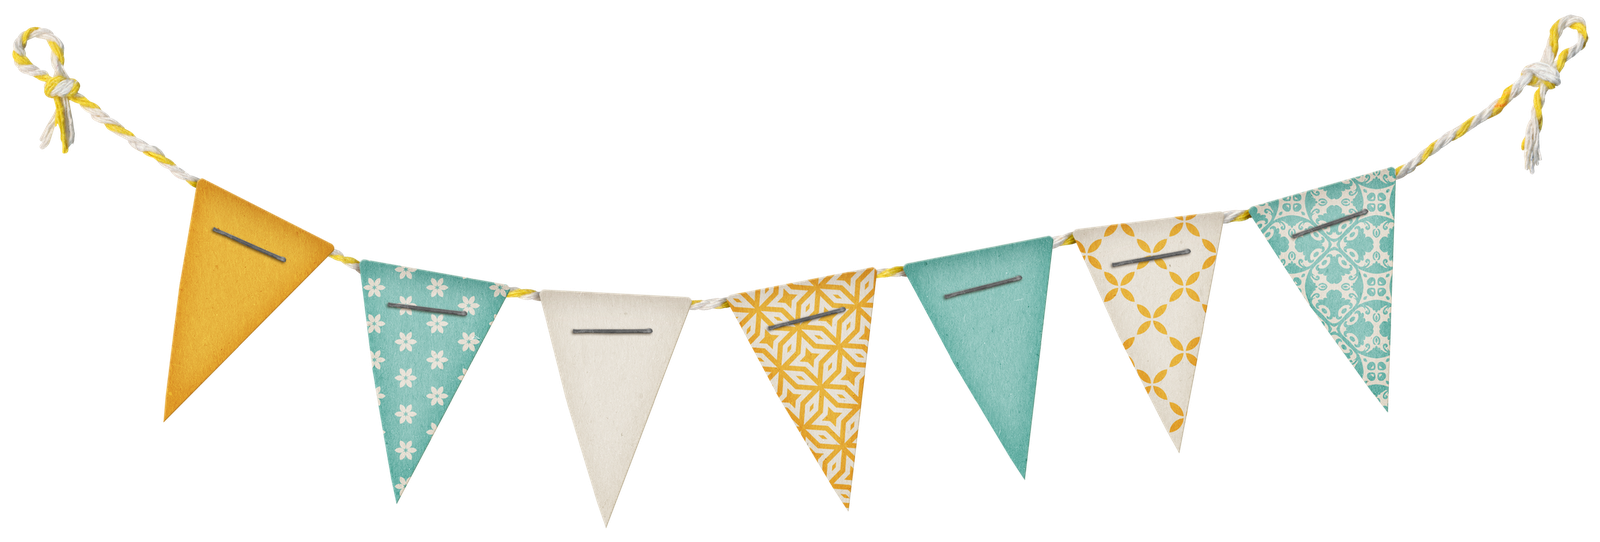 Party banners png. Banner google search sketches